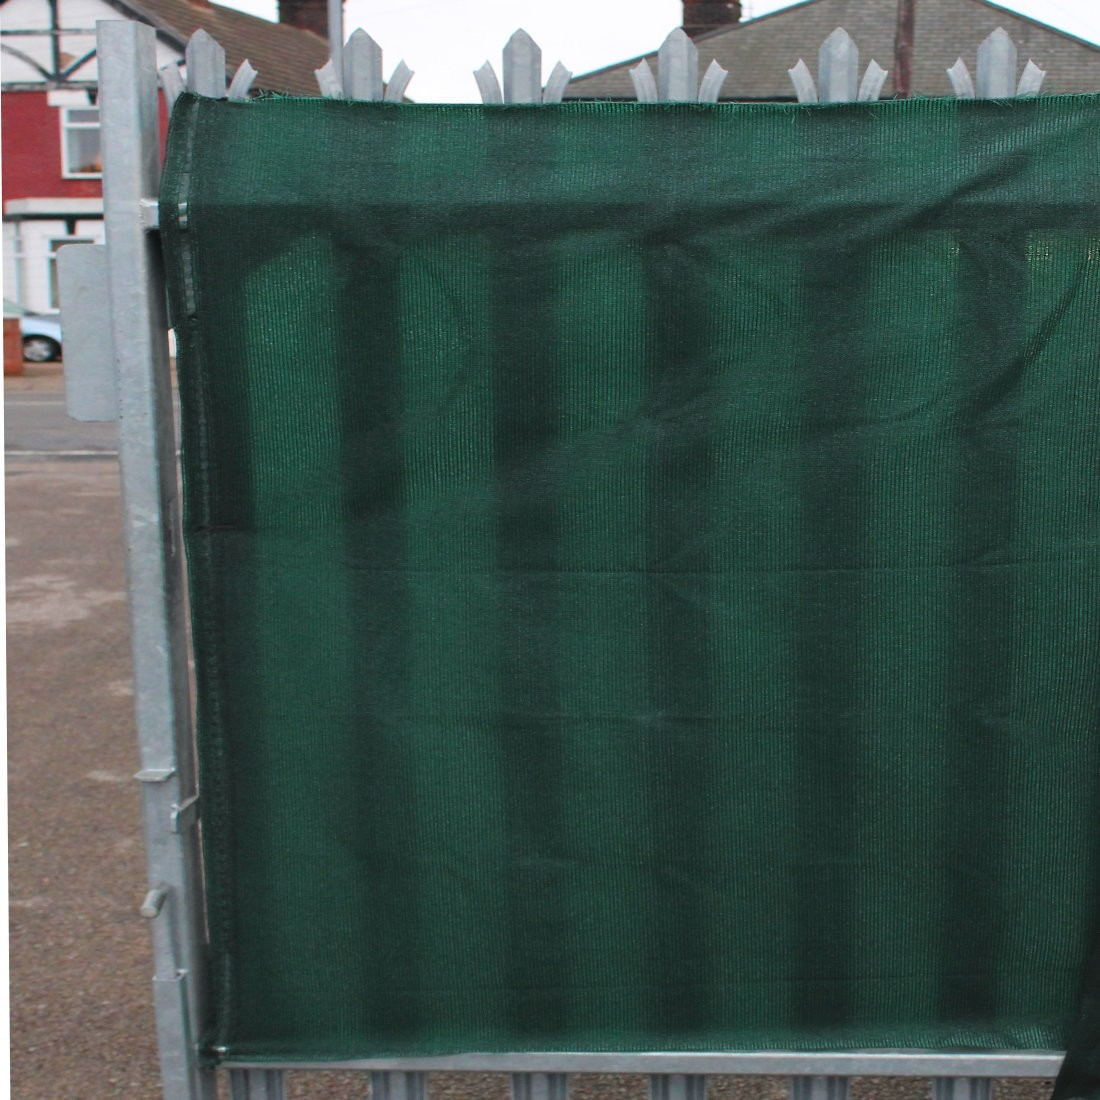 98% Green Shade Netting also for Privacy Screening